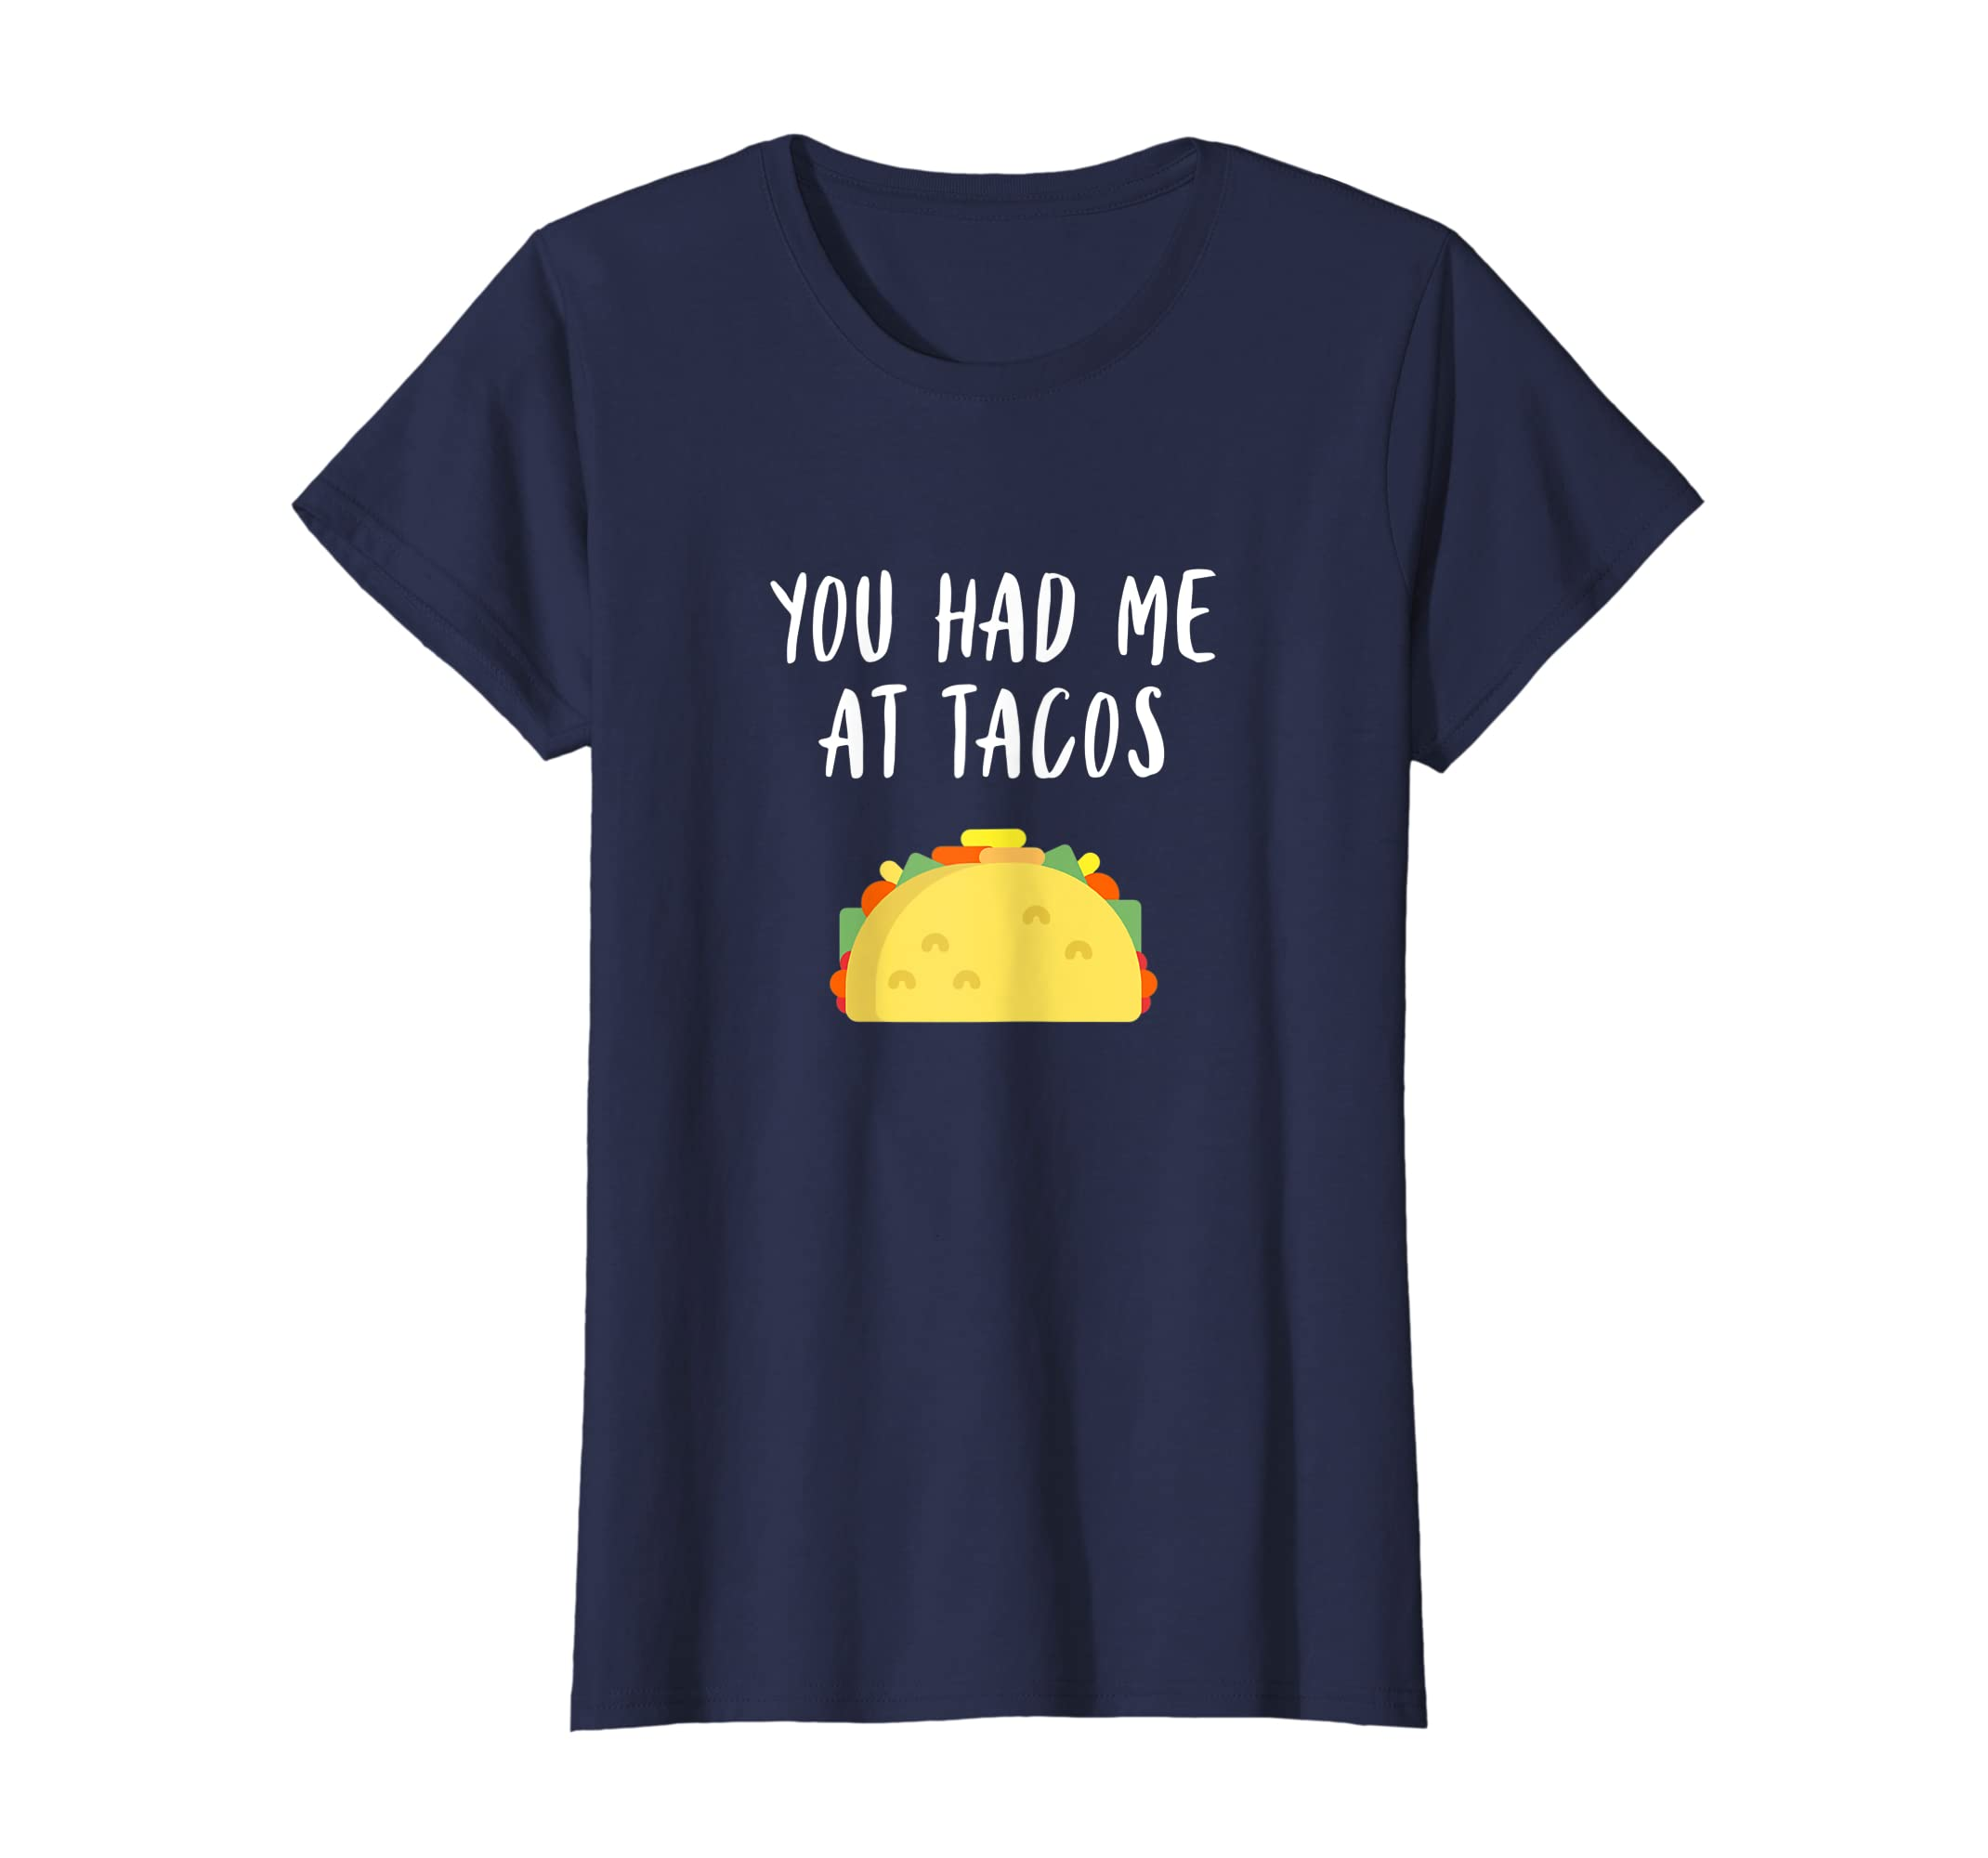 05a2e206 Amazon.com: You Had Me At Tacos T-Shirt Funny Foodie Taco Tee: Clothing